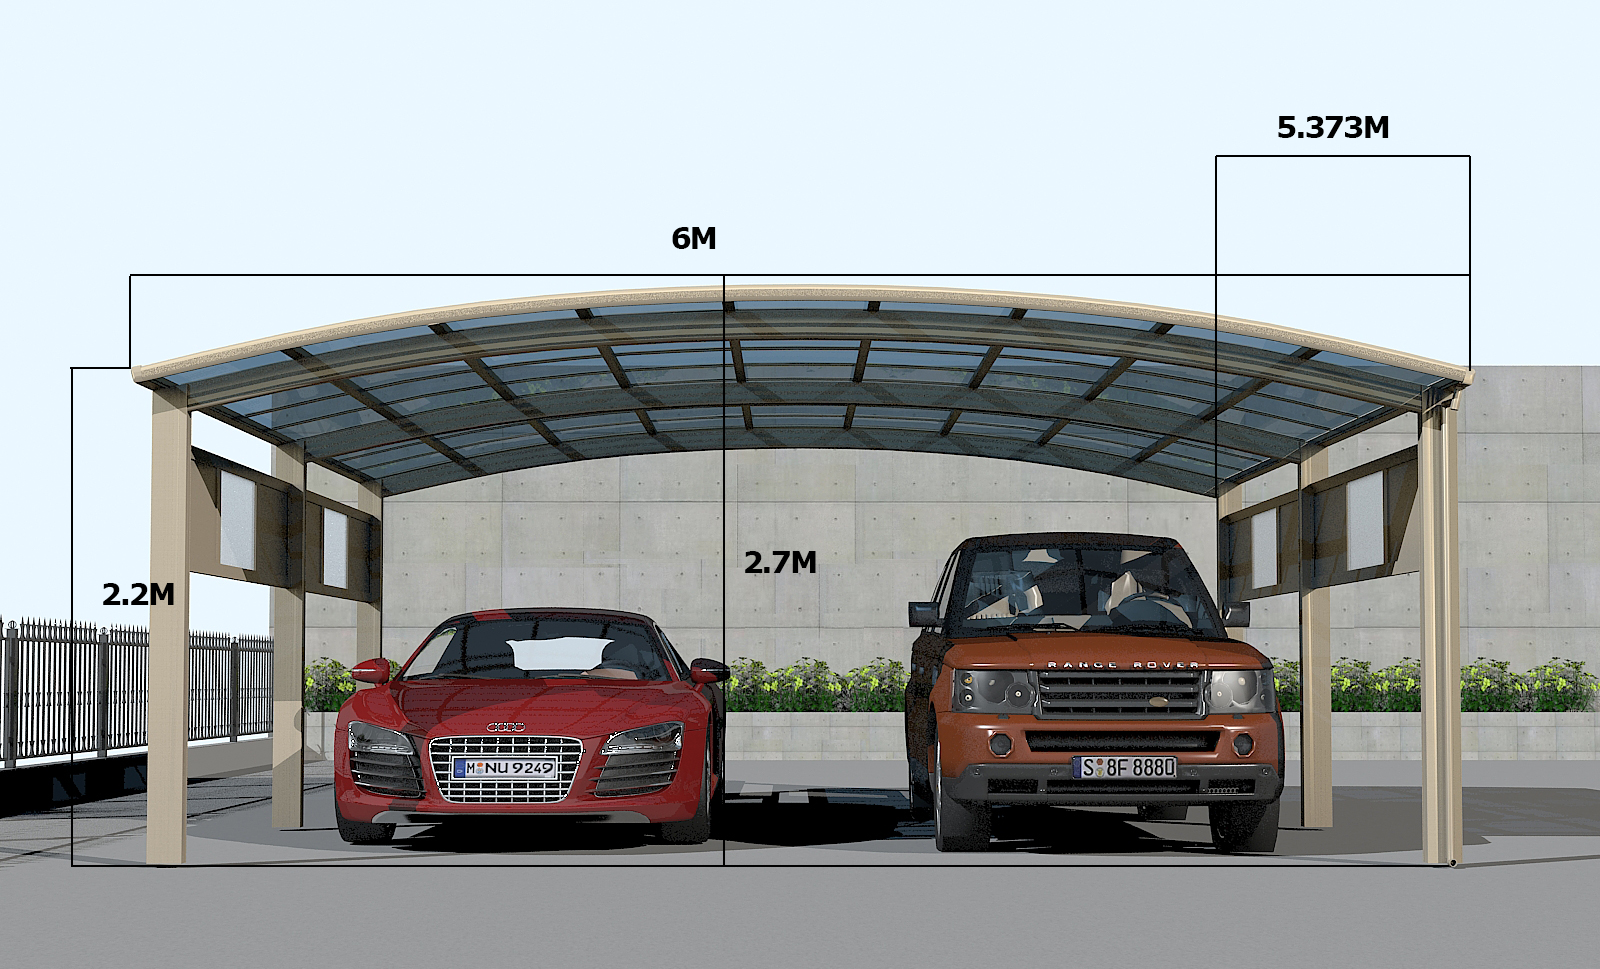 2 car carport kit for sale at carportbuy,metal double cars